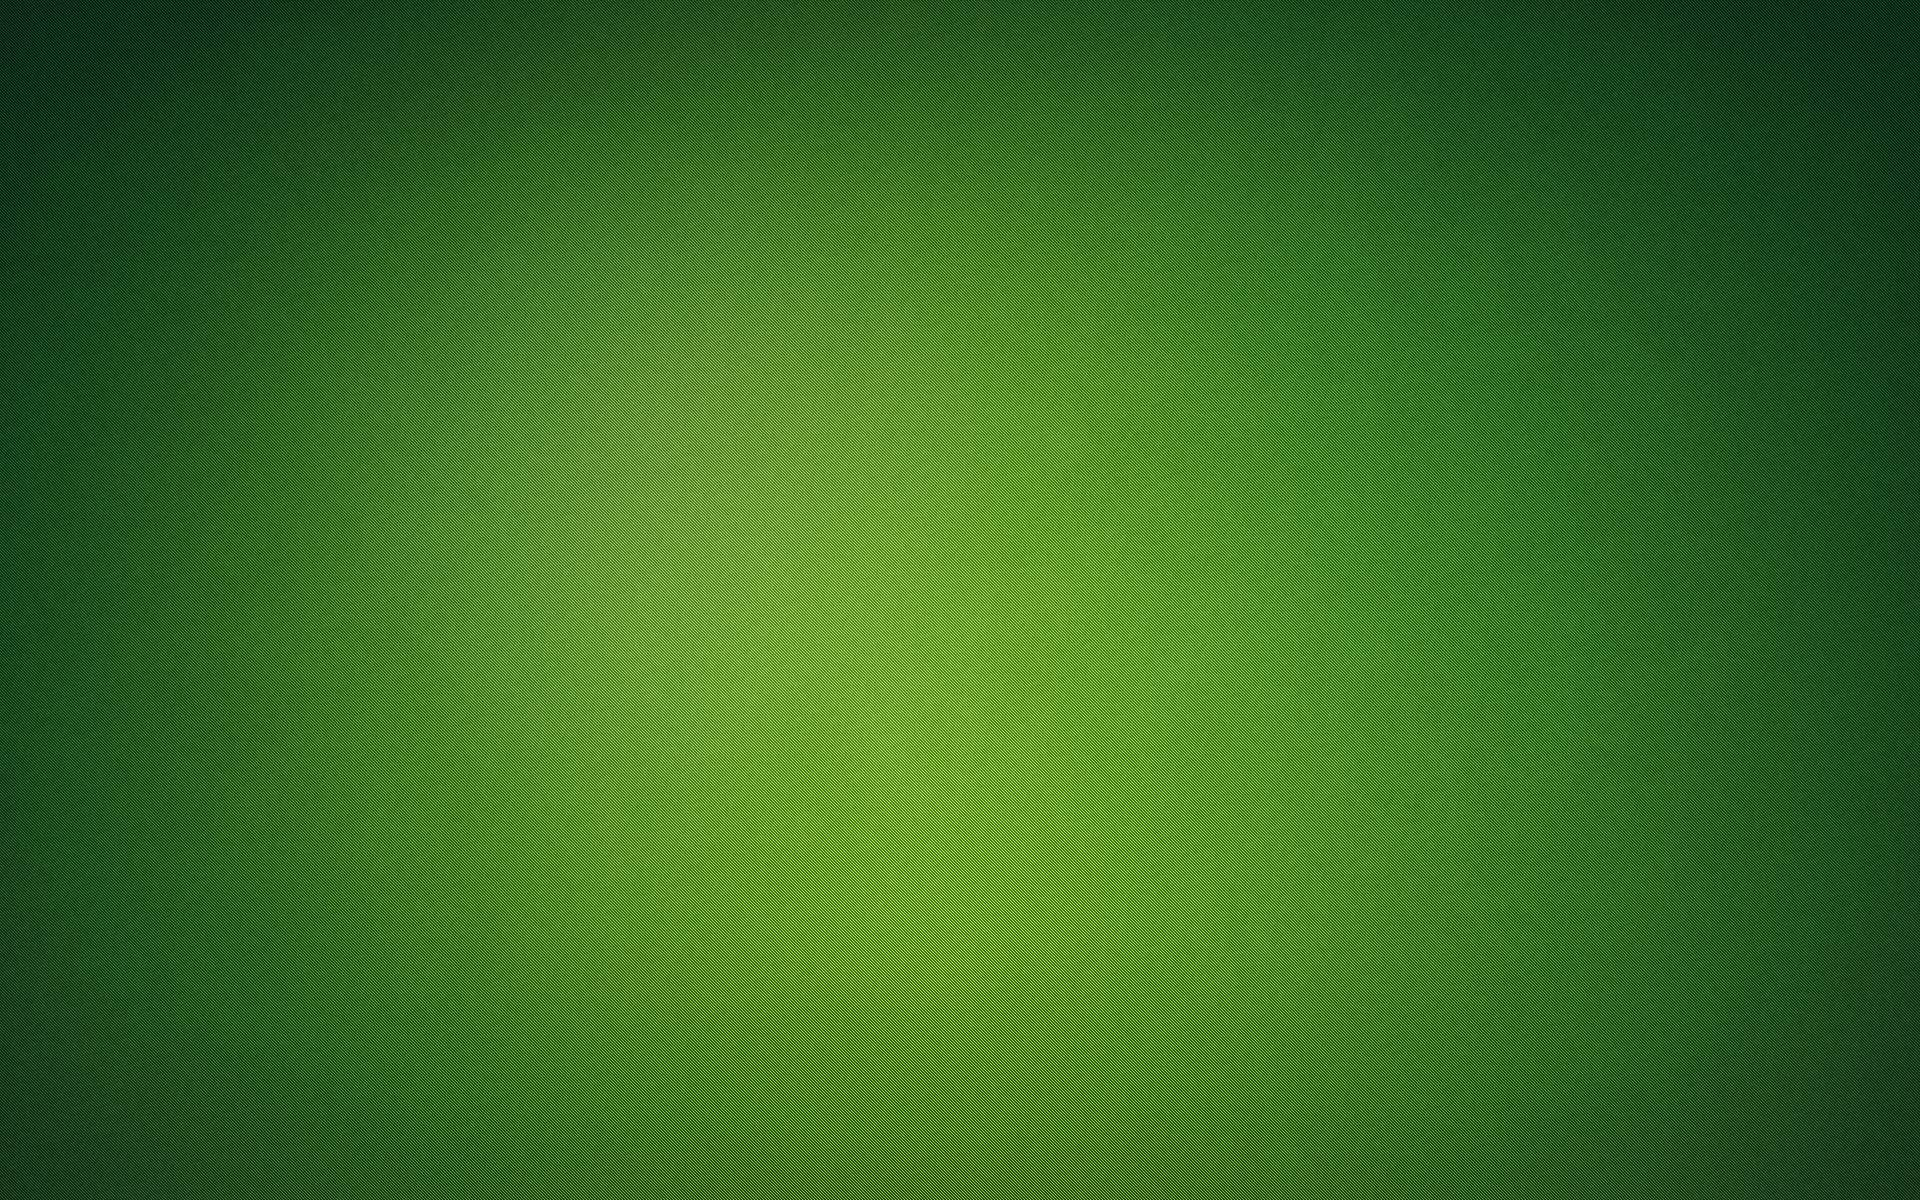 Green Backgrounds 4 19771 HD Wallpapers